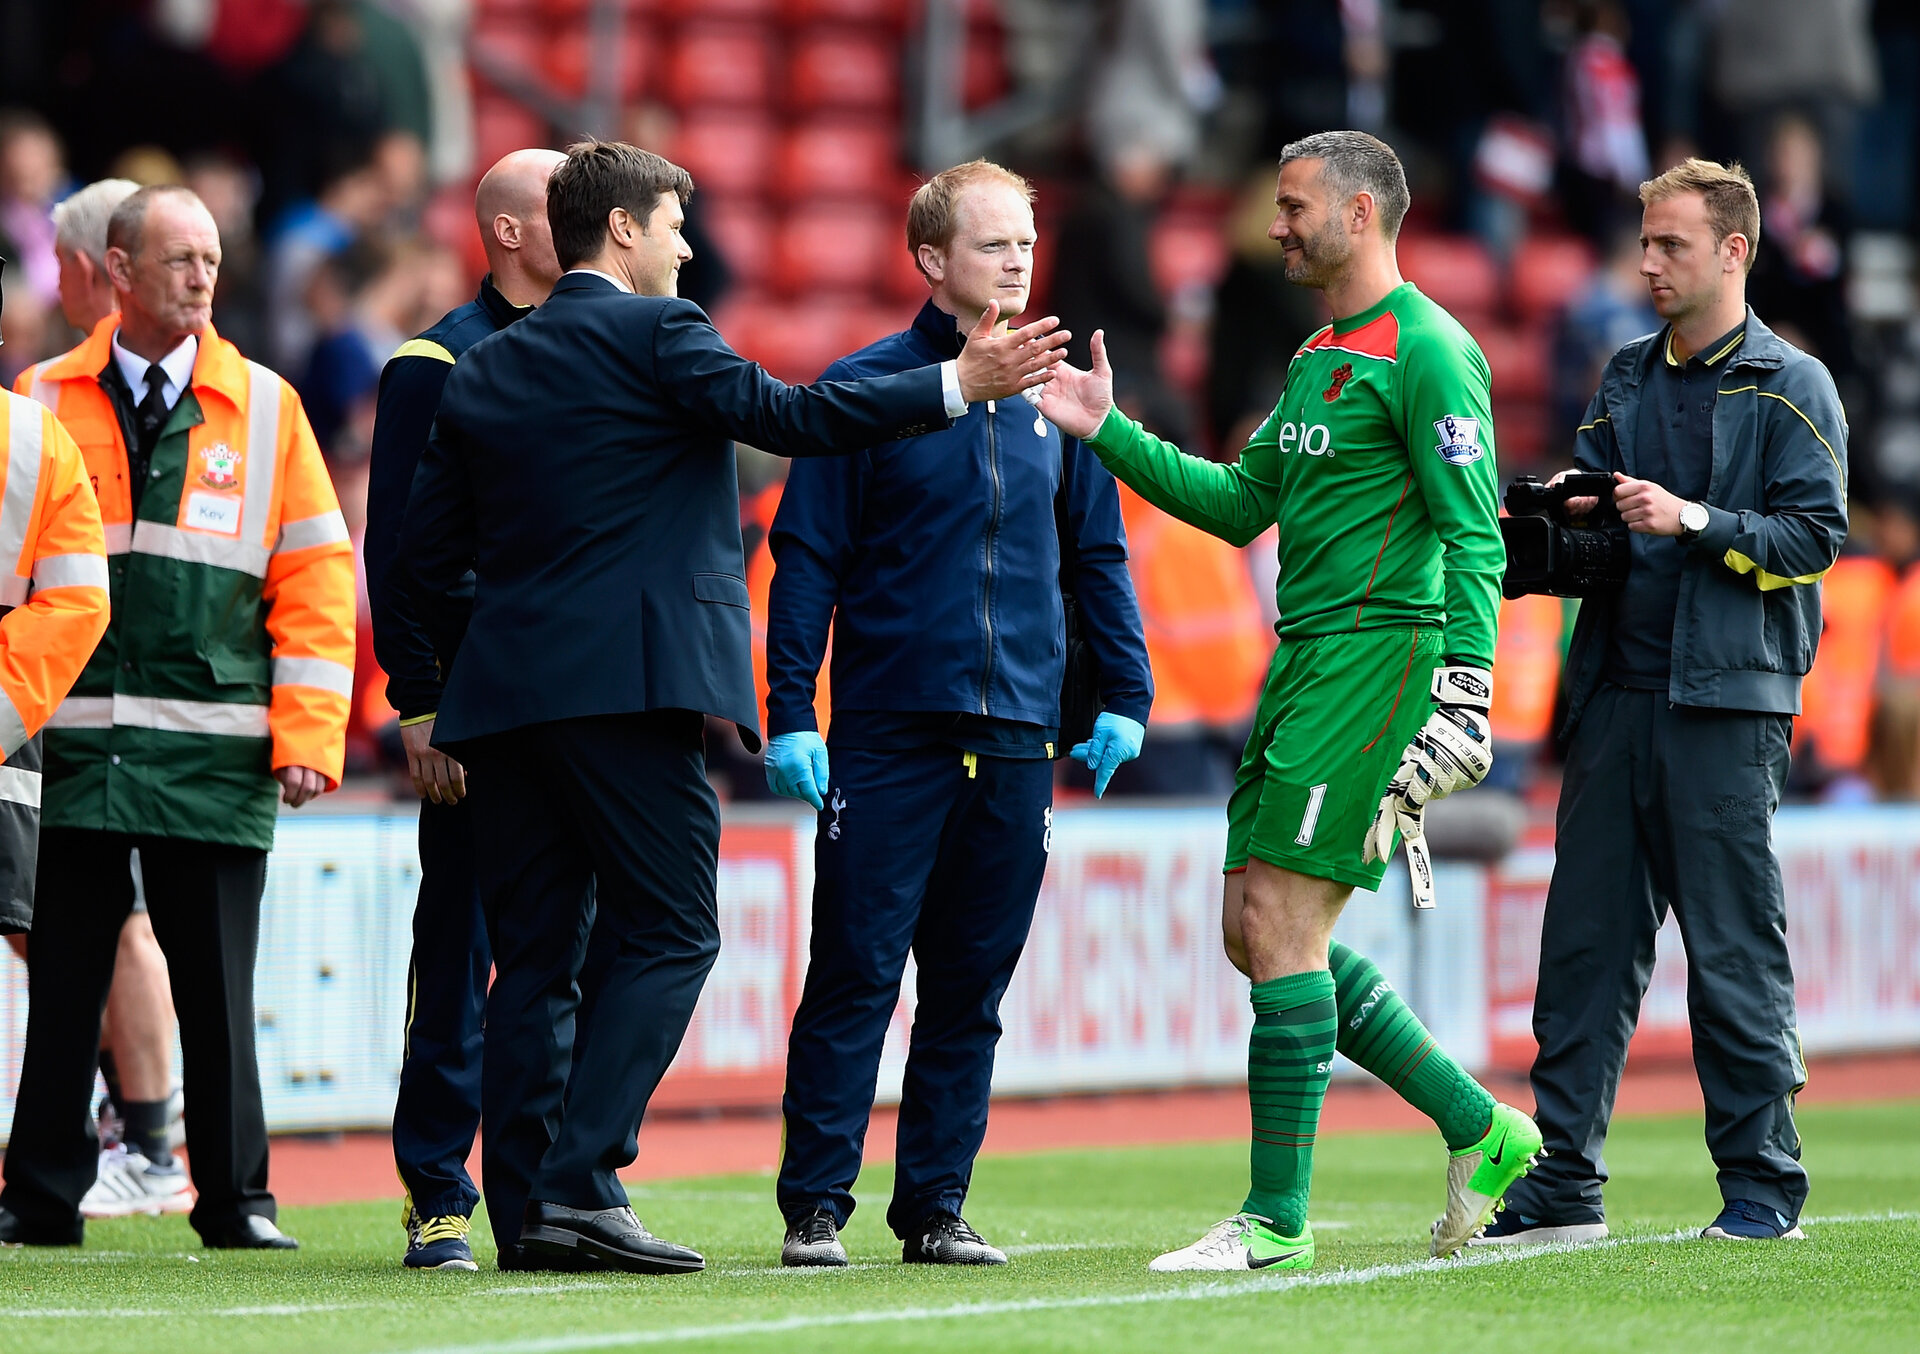 SOUTHAMPTON, ENGLAND - APRIL 25:  Manager Mauricio Pochettino of Spurs shakes hands with Kelvin Davis of Southampton during the Barclays Premier League match between Southampton and Tottenham Hotspur at St Mary's Stadium on April 25, 2015 in Southampton, England.  (Photo by Mike Hewitt/Getty Images)